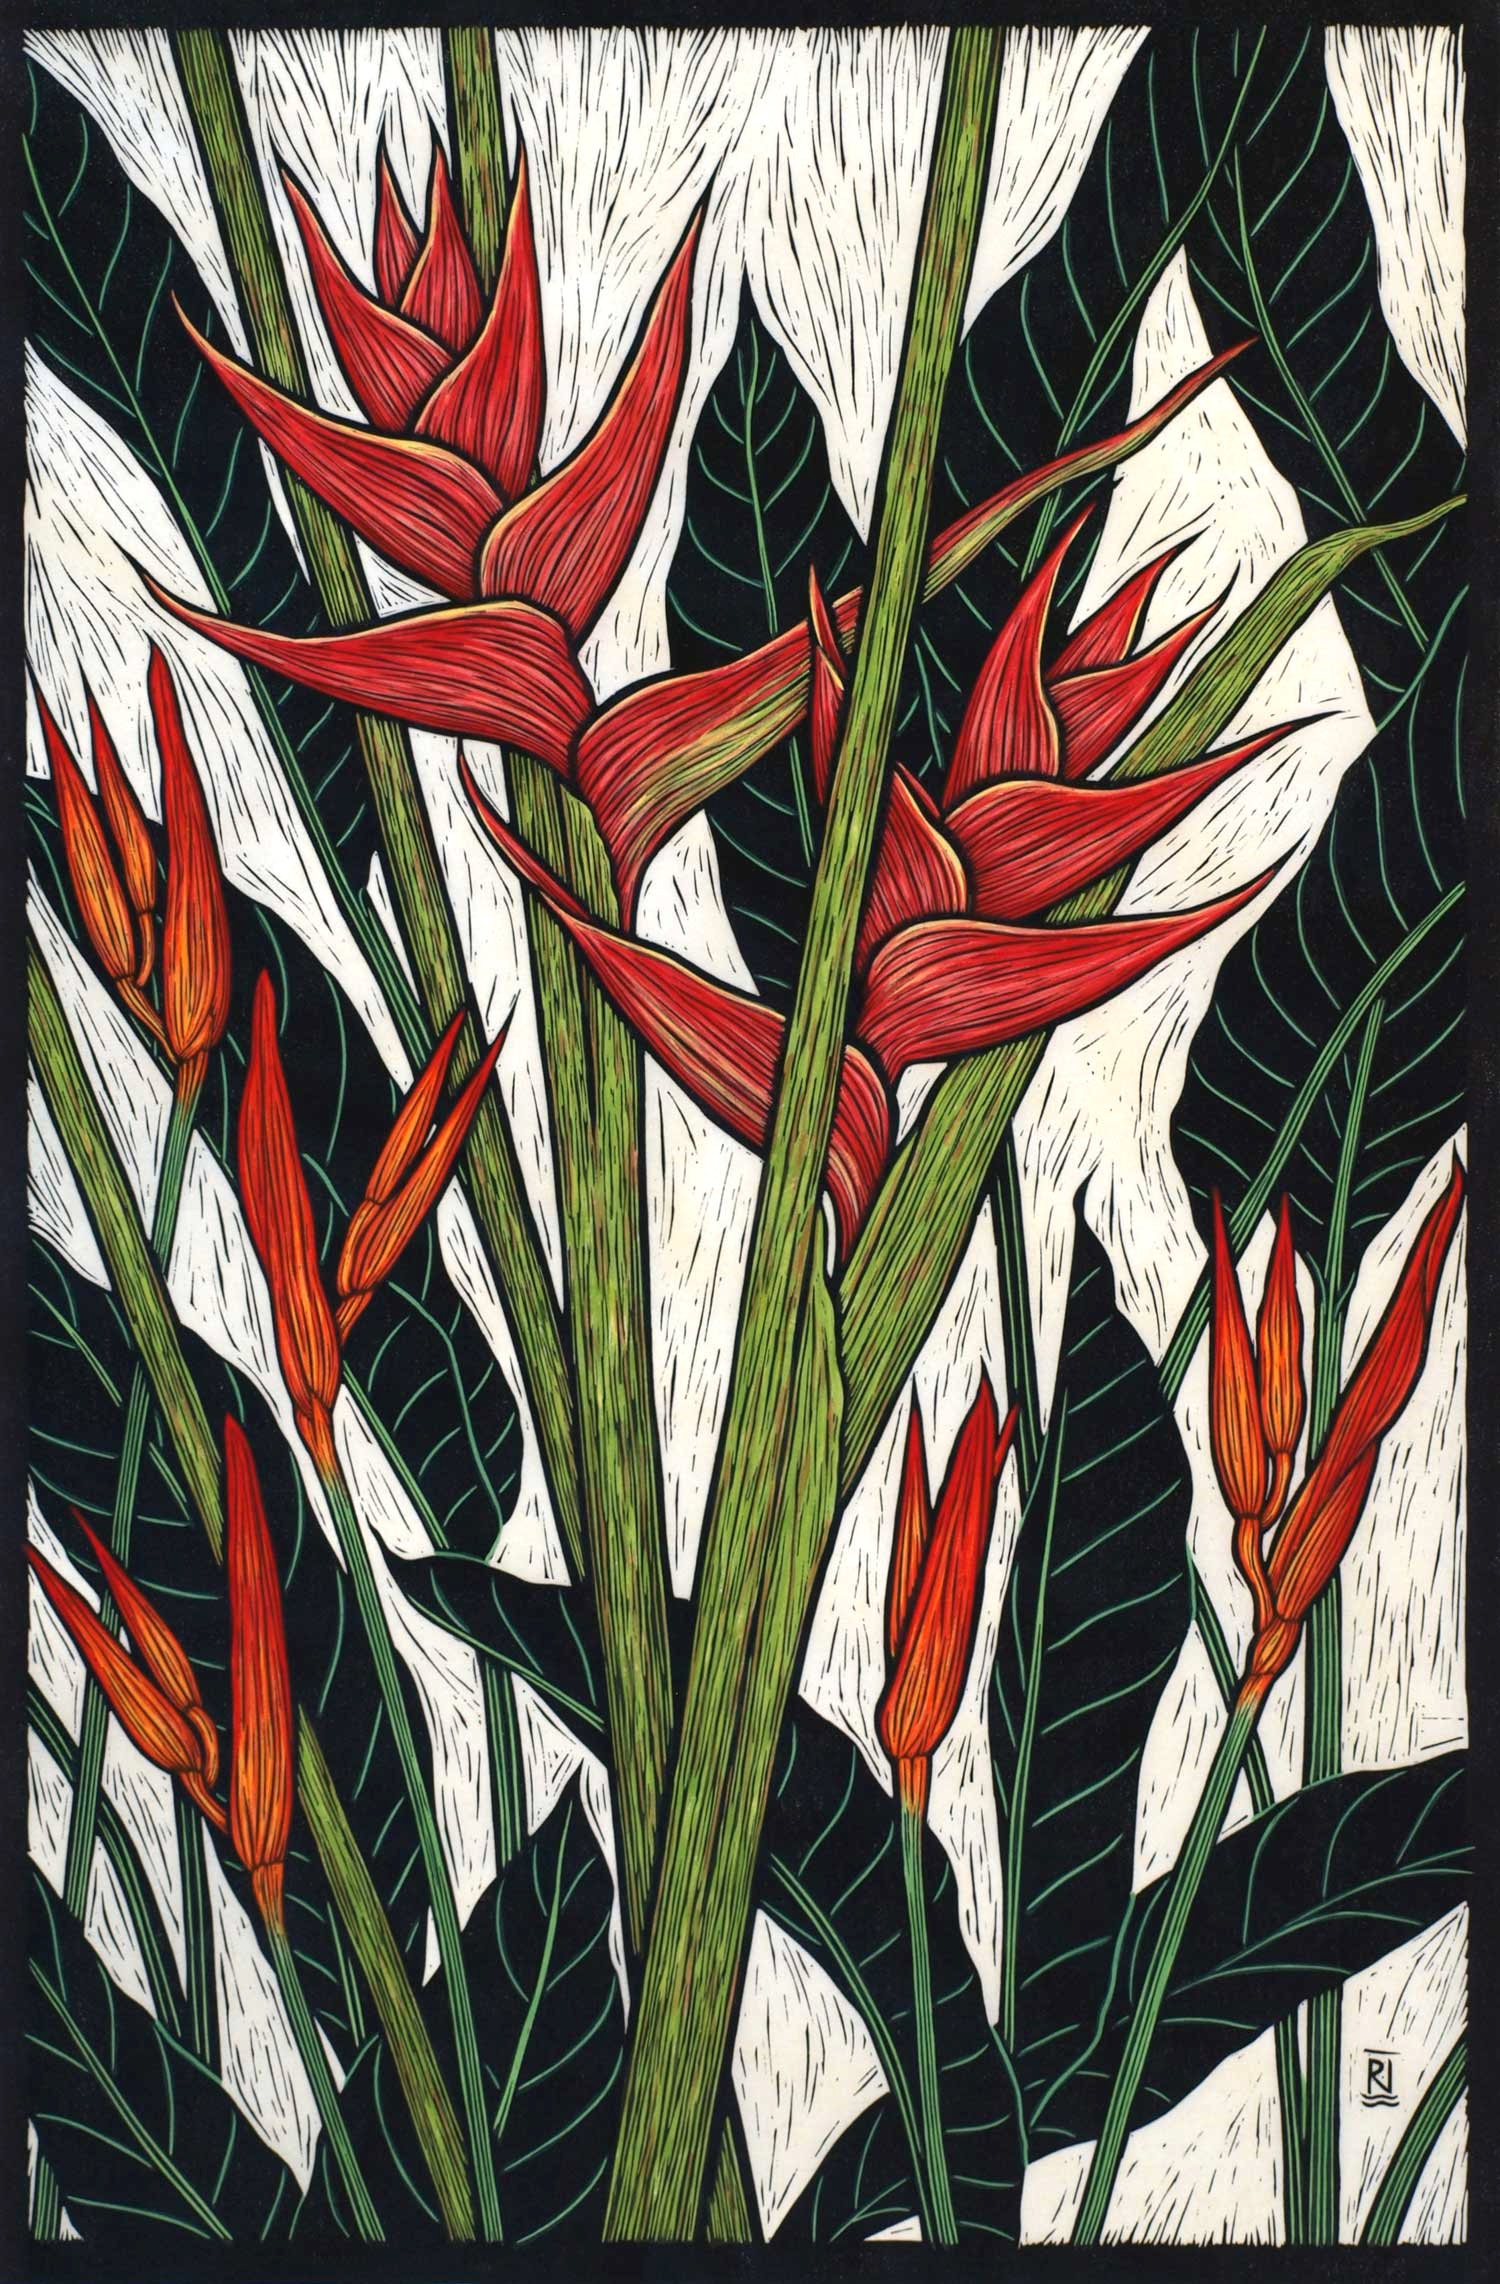 HELICONIA  78.5 X 51.5 CM EDITION OF 50  HAND COLOURED LINOCUT ON HANDMADE JAPANESE PAPER  $1,550